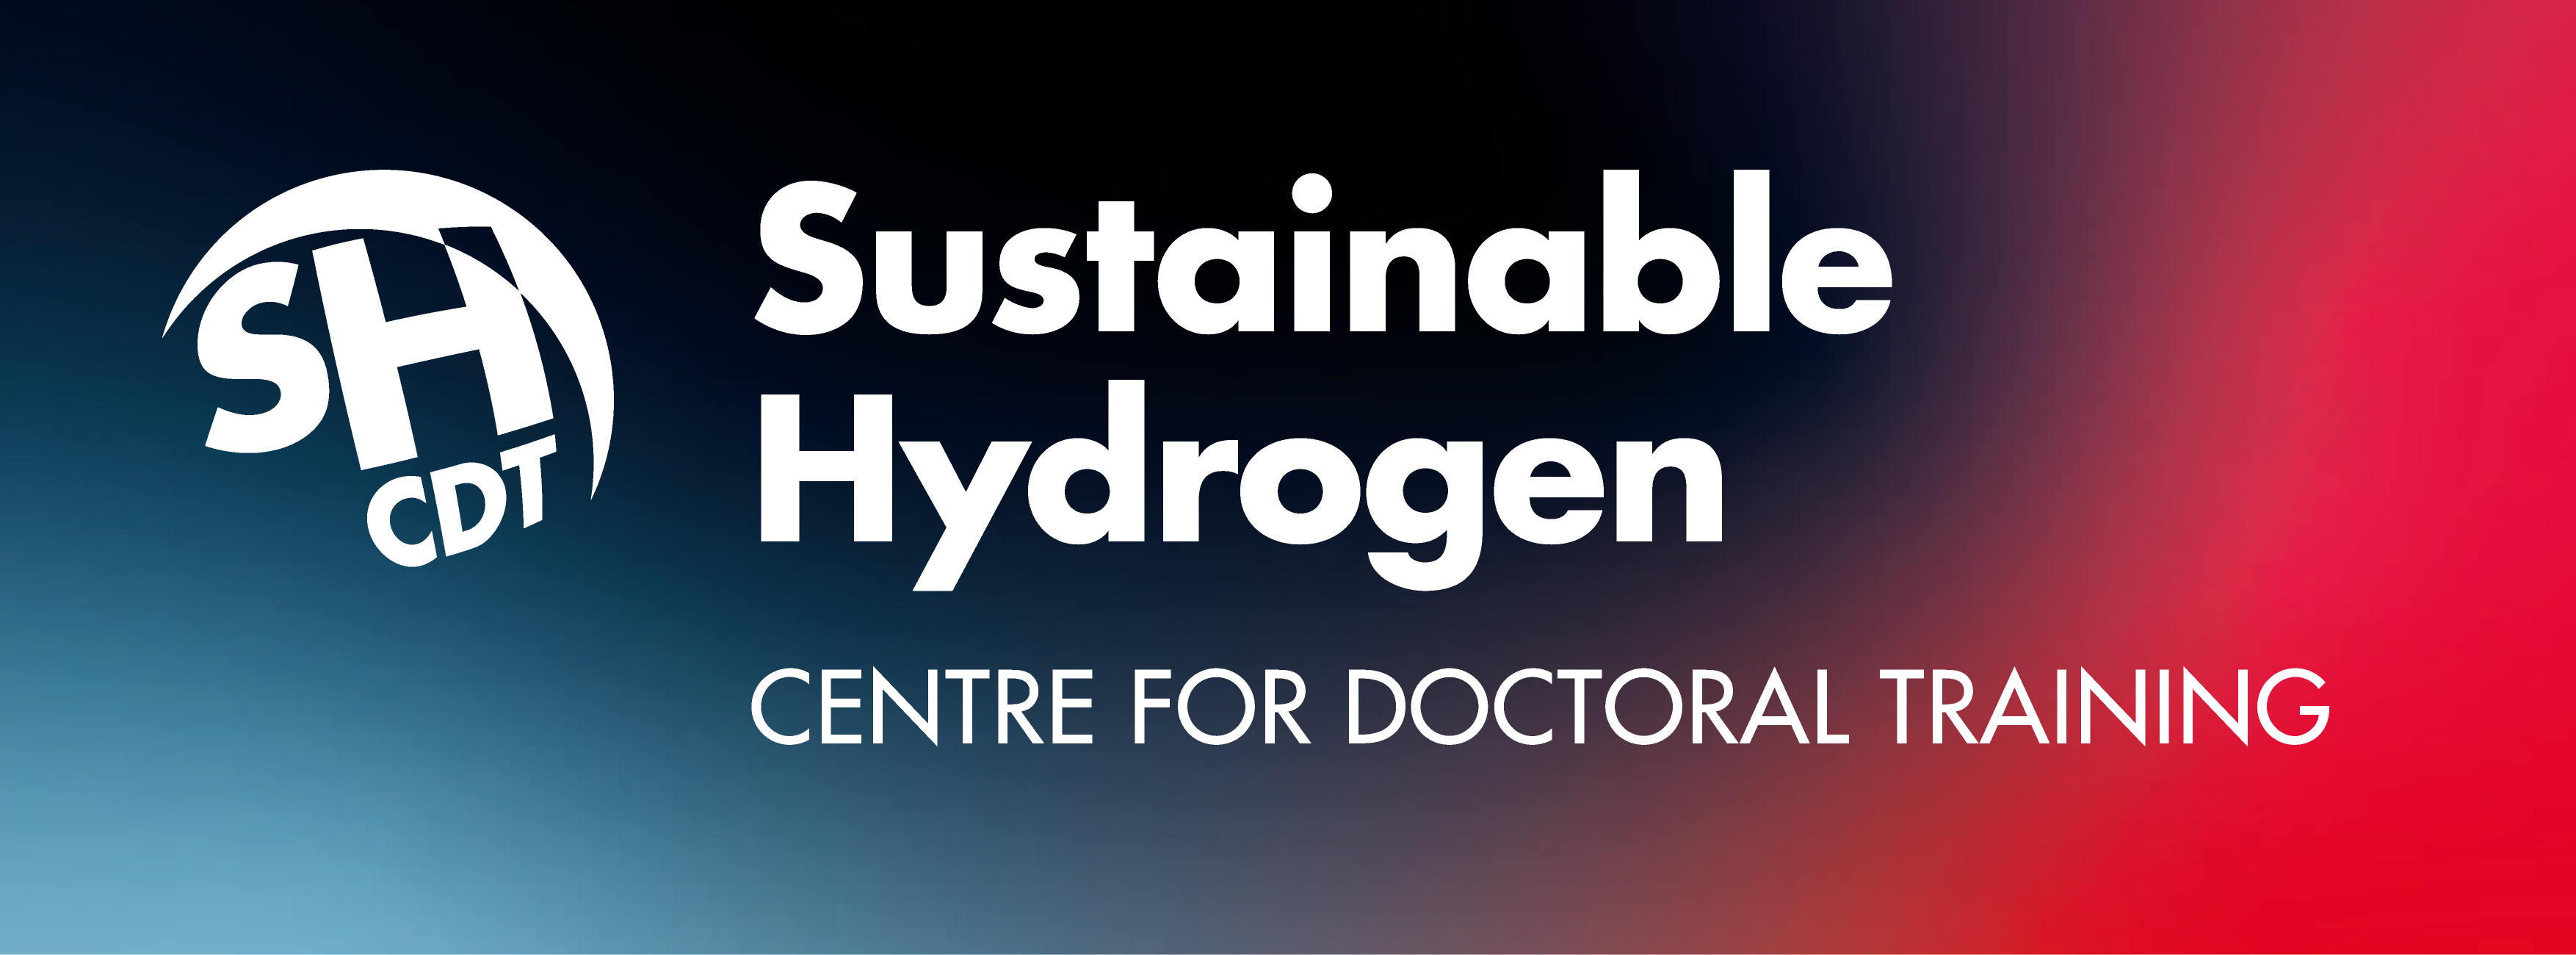 Sustainable Hydrogen Centre for Doctoral Training